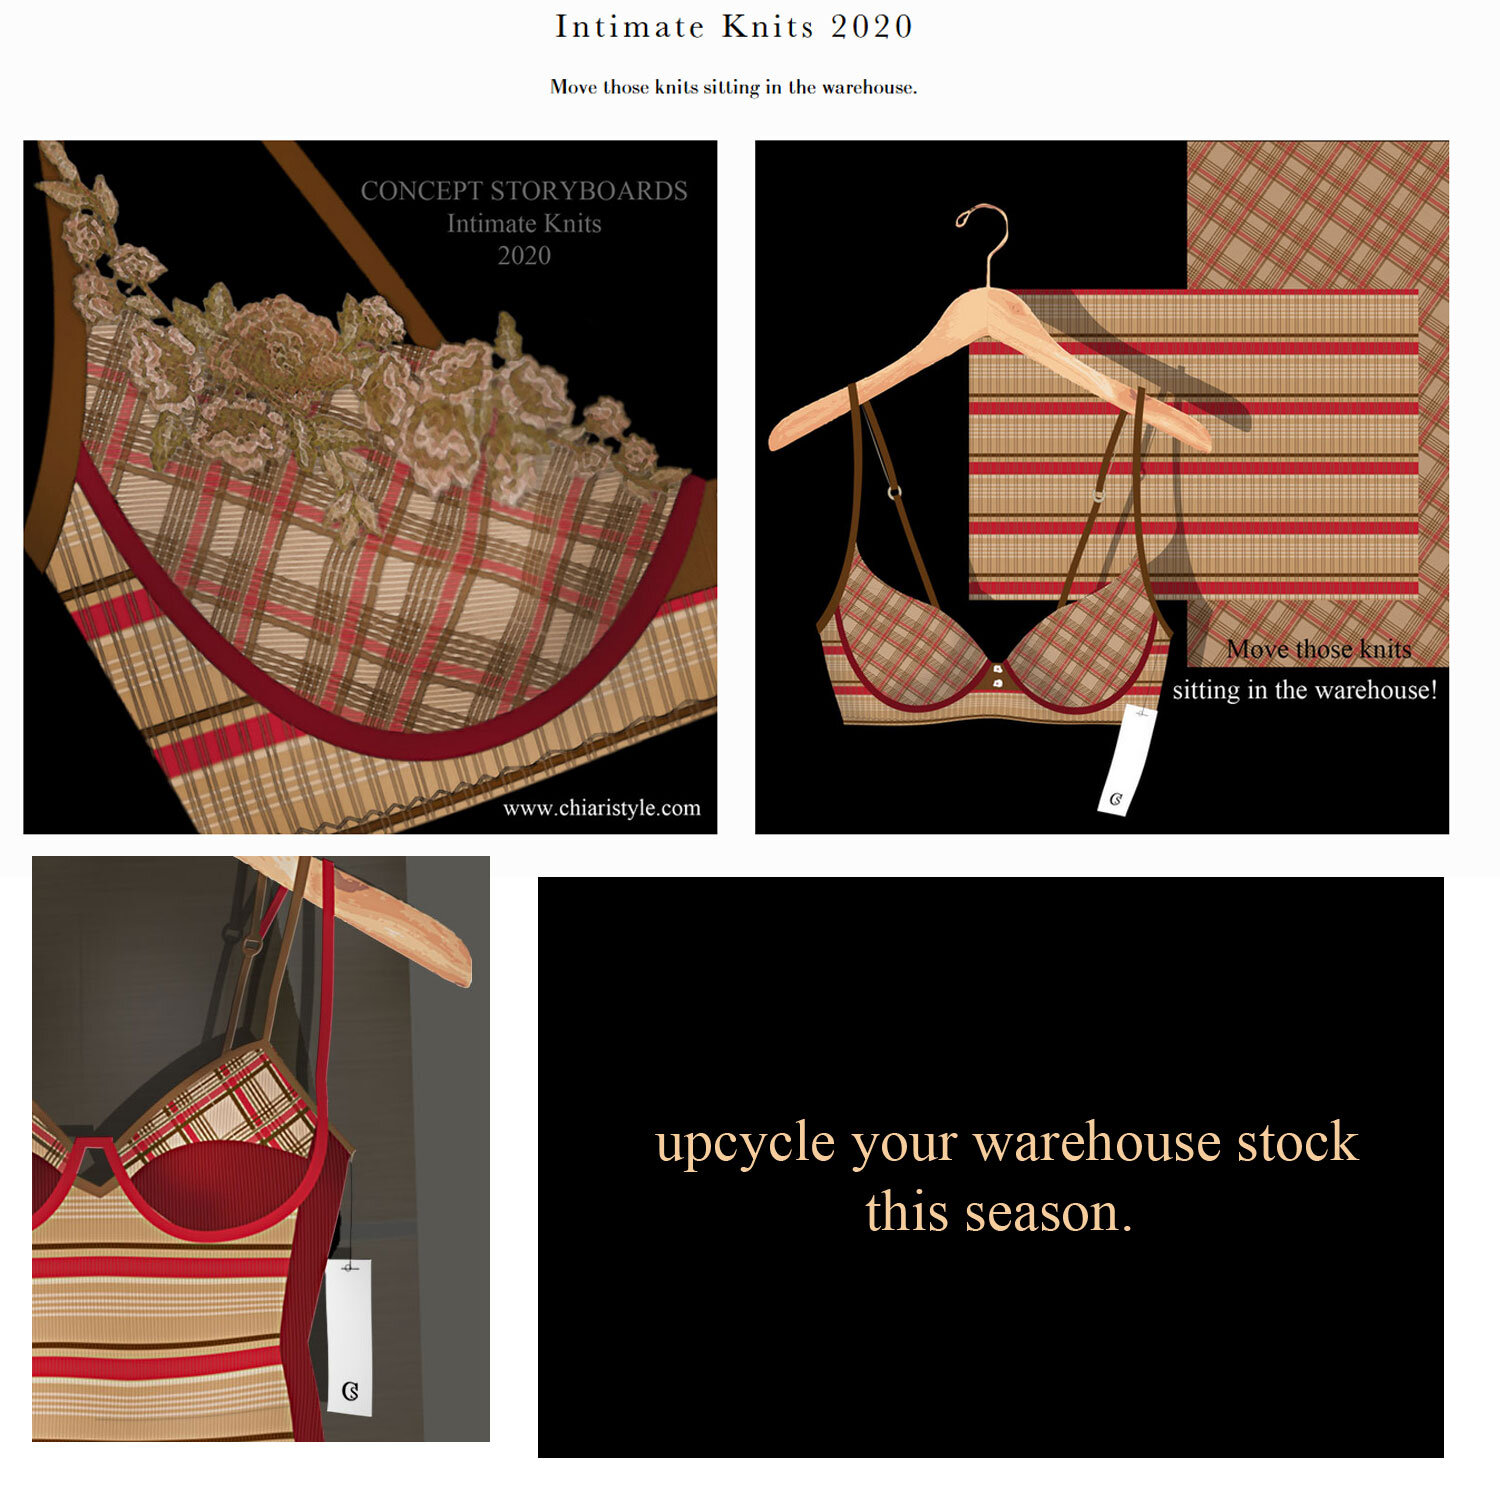 upsycle-your-warehouse-stock-this-season,-chiaristyle.jpg